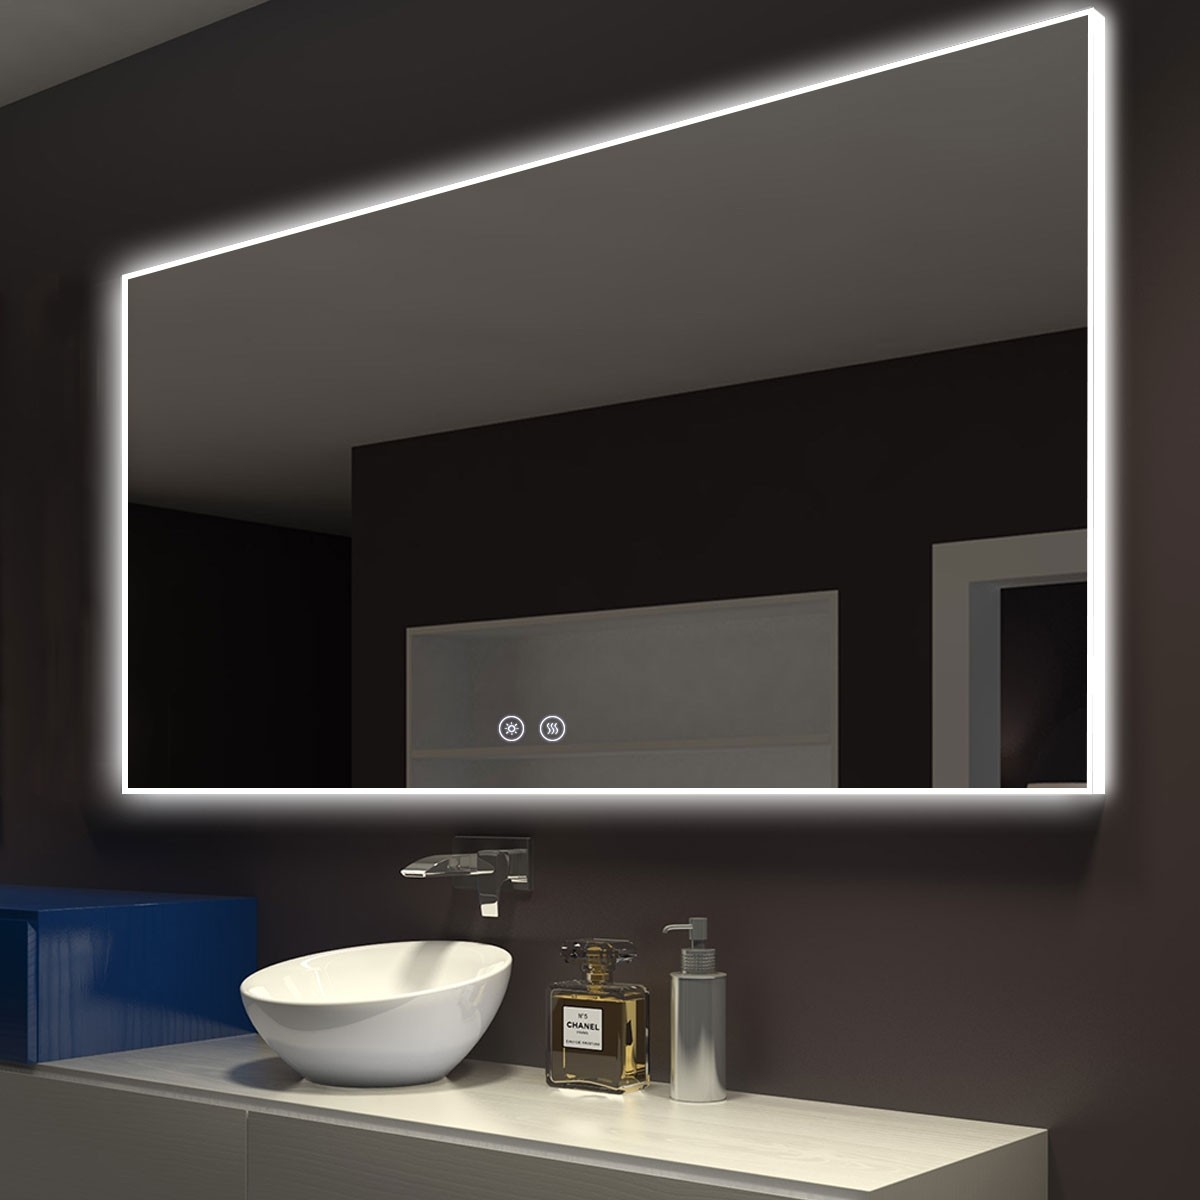 DECORAPORT 55 x 36 Po Miroir de Salle de Bain LED avec Bouton Tactile, Anti-Buée, Luminosité Réglable, Bluetooth, Montage Vertical & Horizontal (D422-5536A)